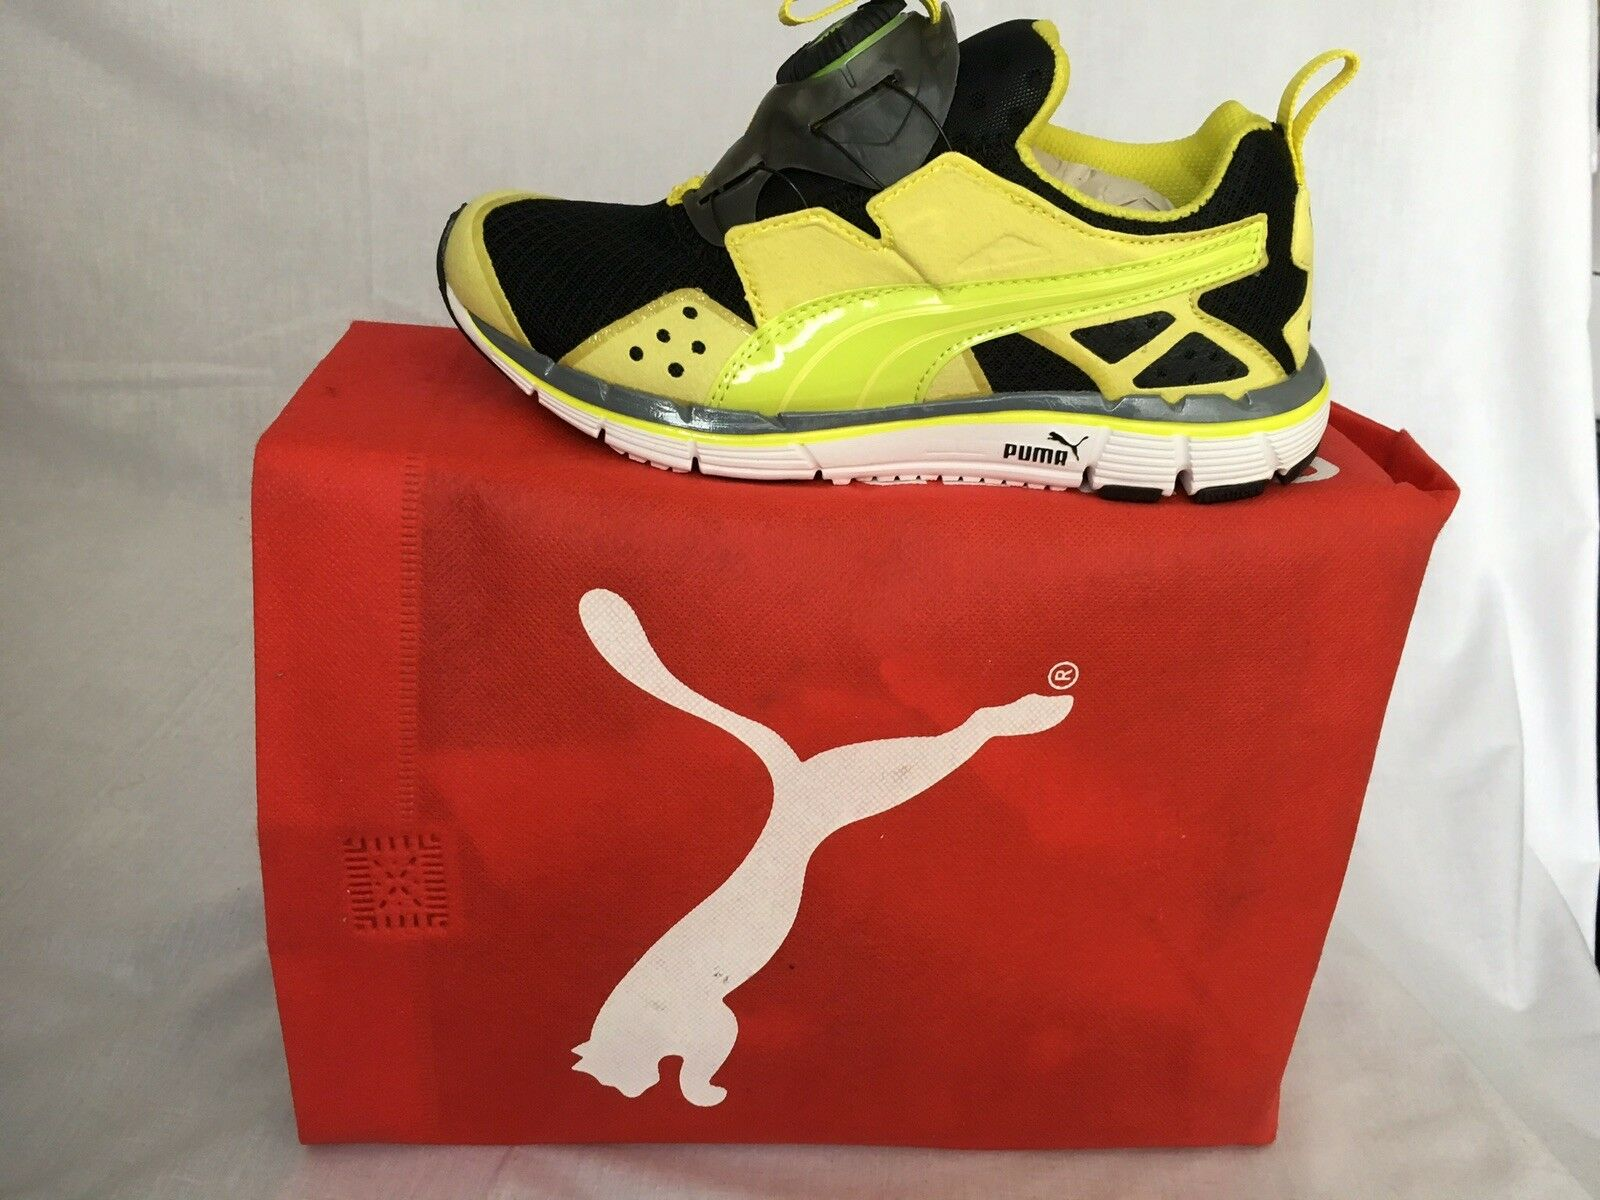 Men's brand New Puma Faas Trainers UK Size 3.